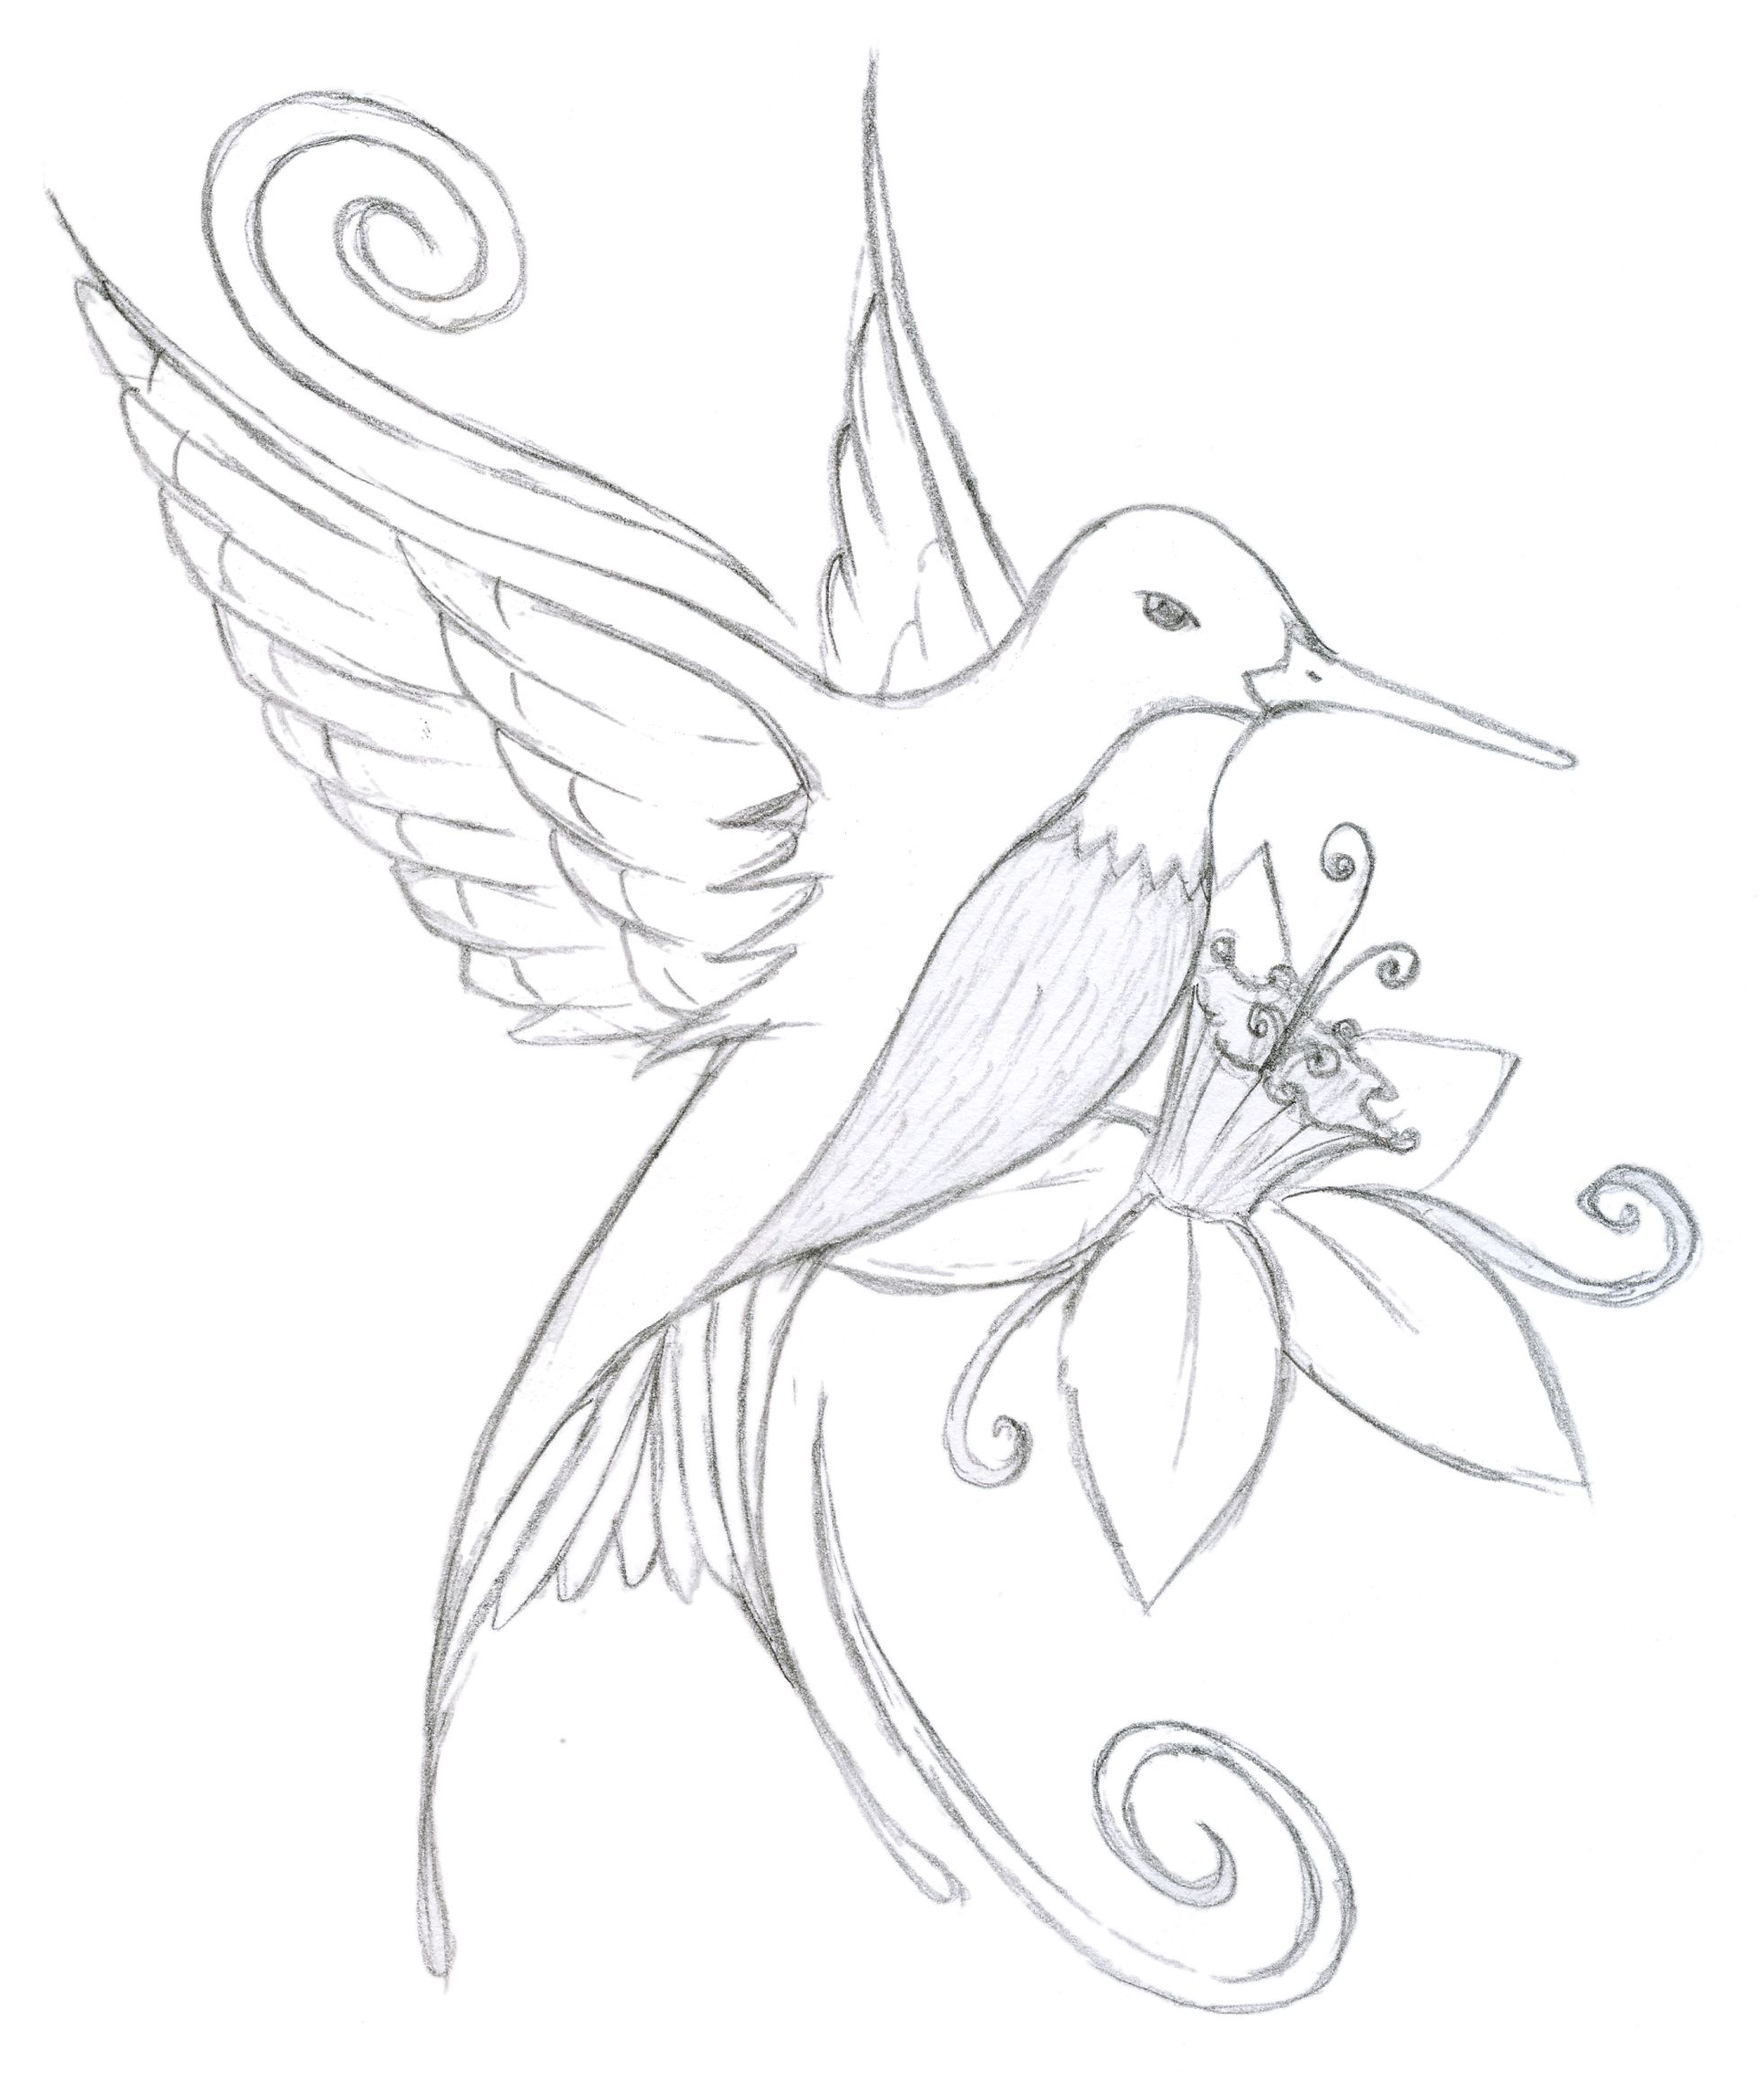 Hummingbird Coloring Pages | Kids Coloring Page | outlines ...